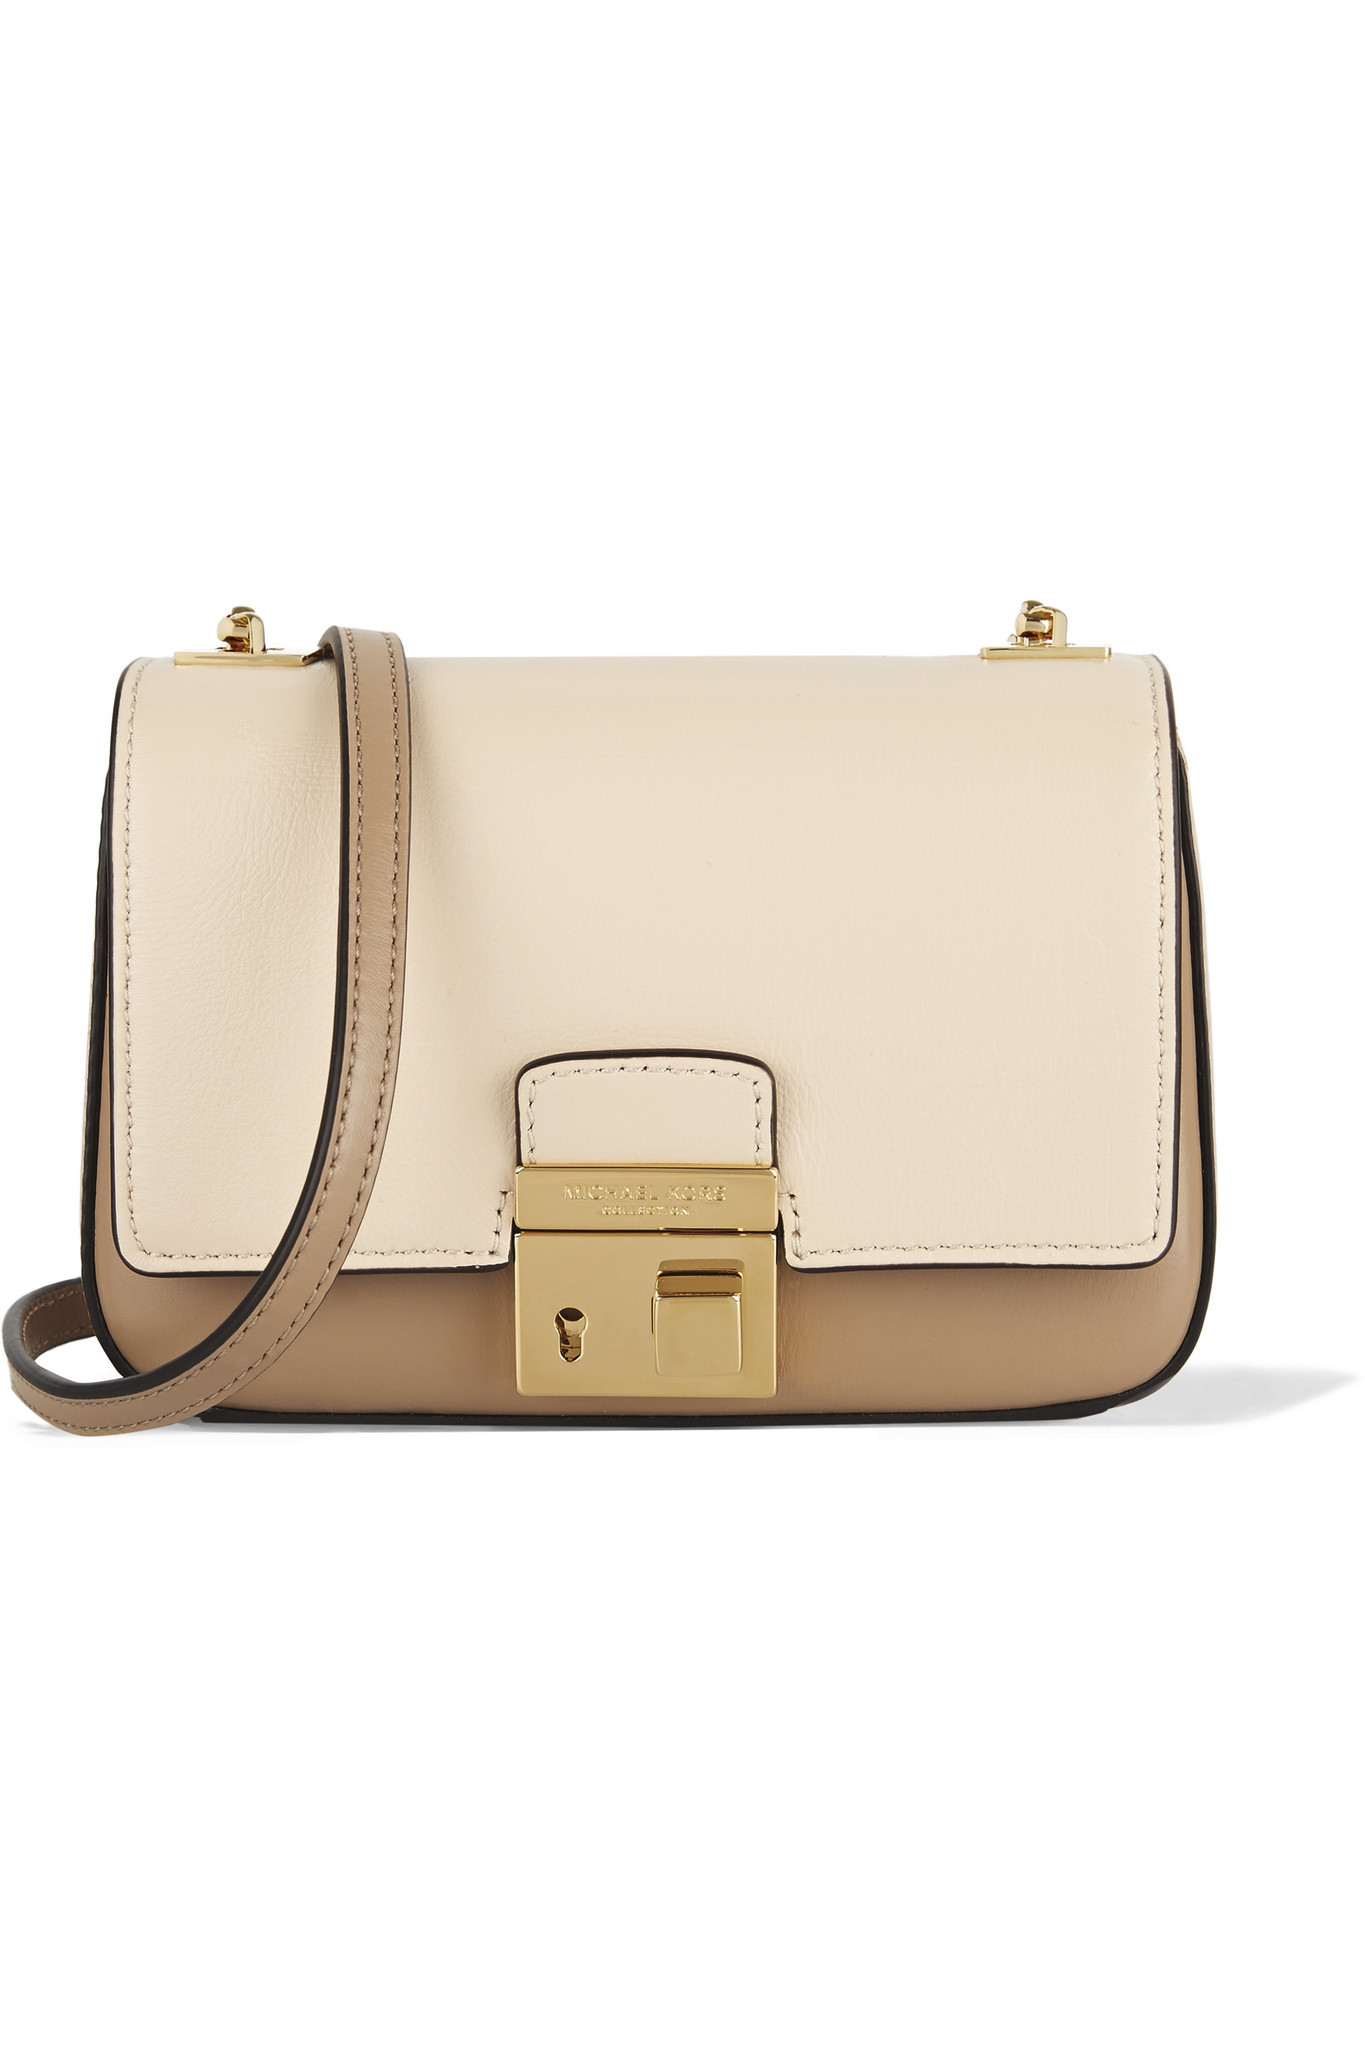 f48f963ac43a Lyst - Michael Kors - Gia Small Two-tone Leather Shoulder Ba ...